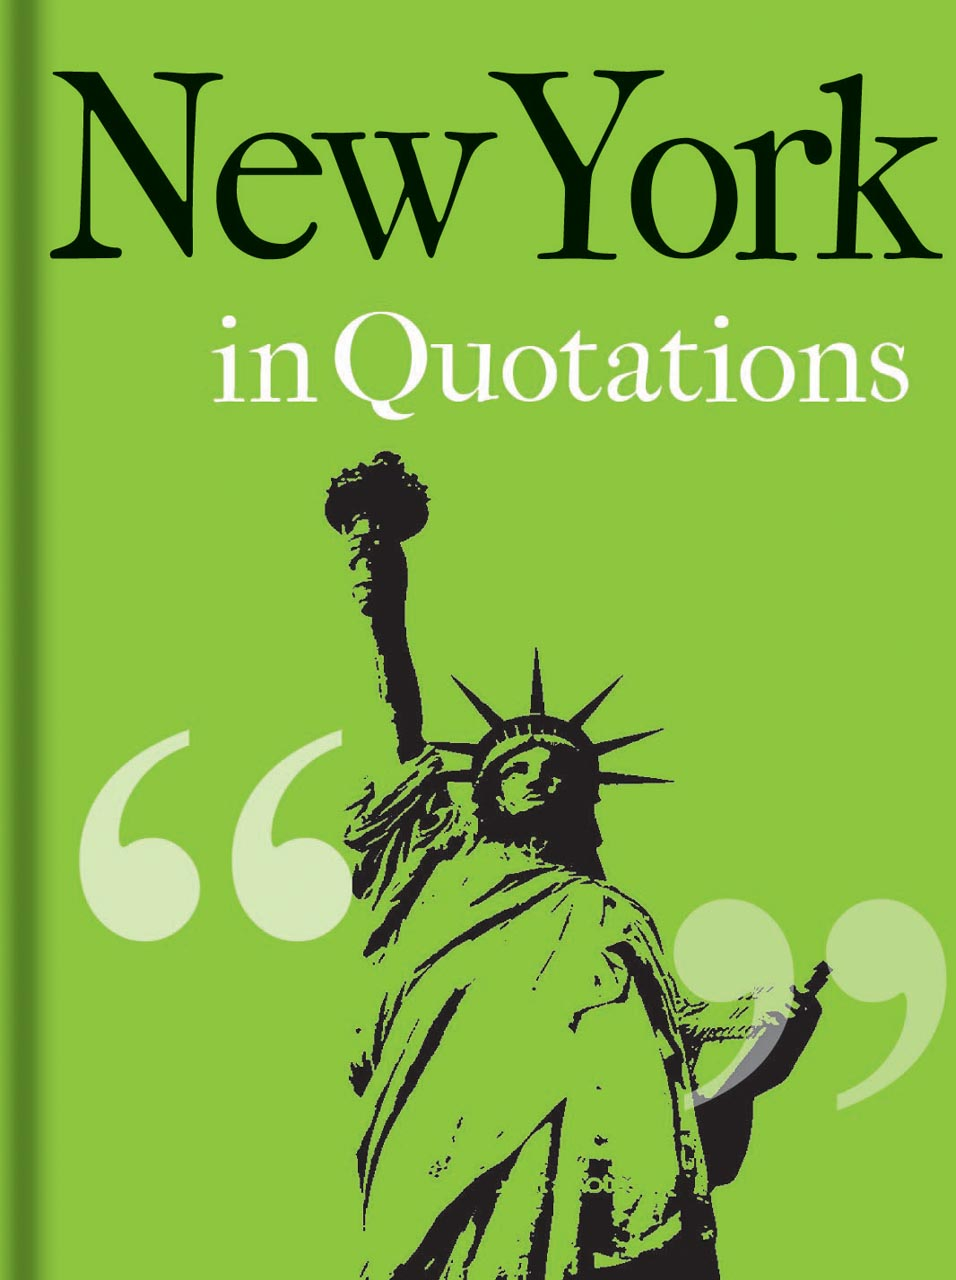 New York in Quotations, Mitchell